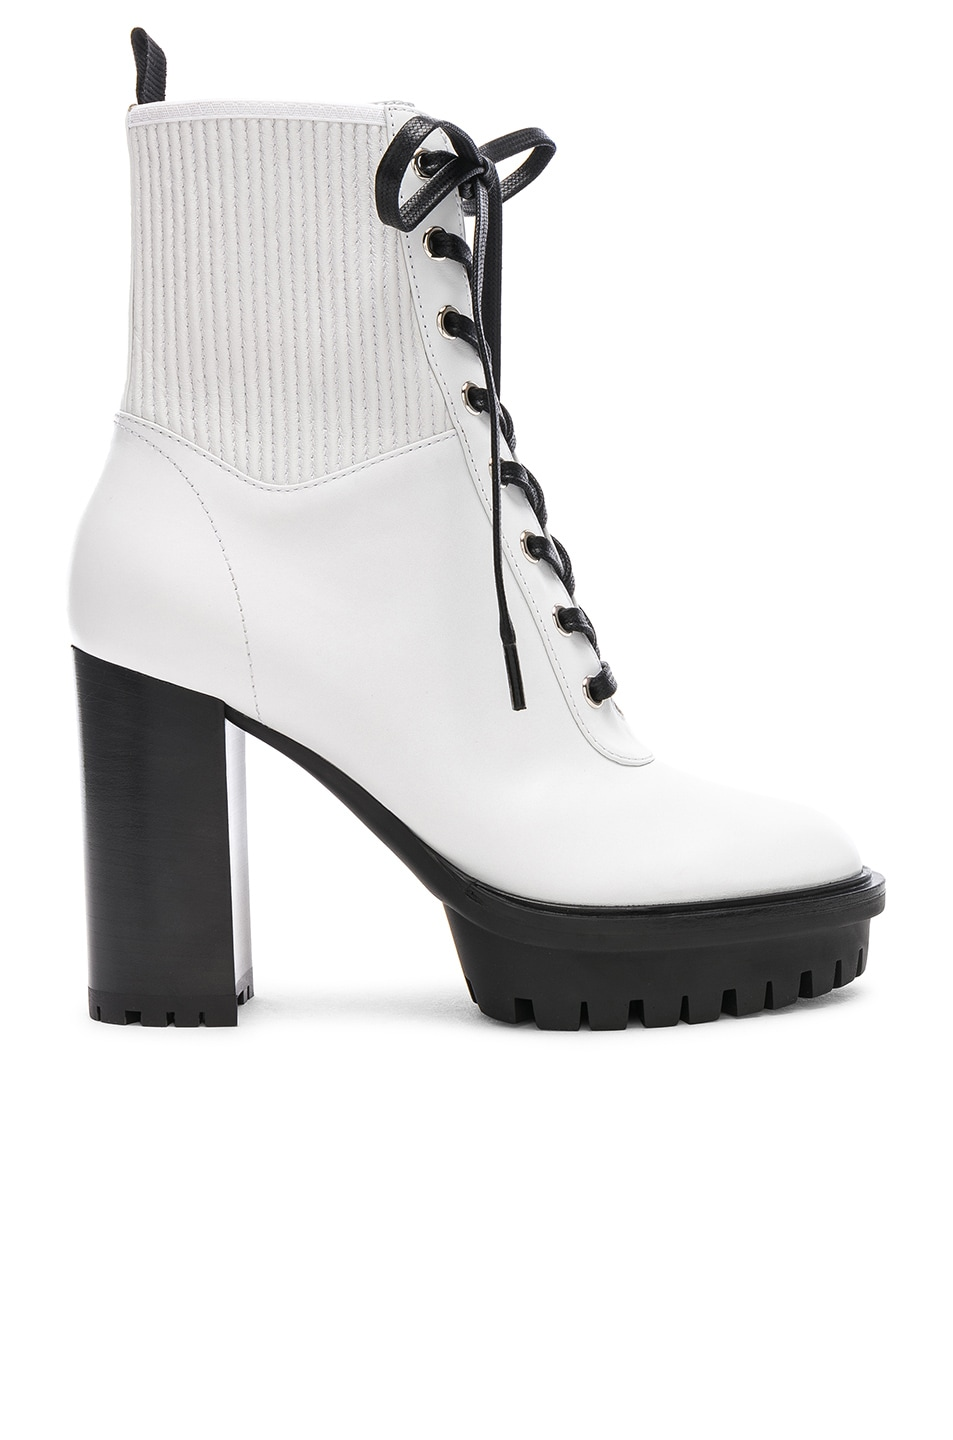 Image 1 of Gianvito Rossi Leather & Eco Stretch Martis Platform Ankle Boots in White